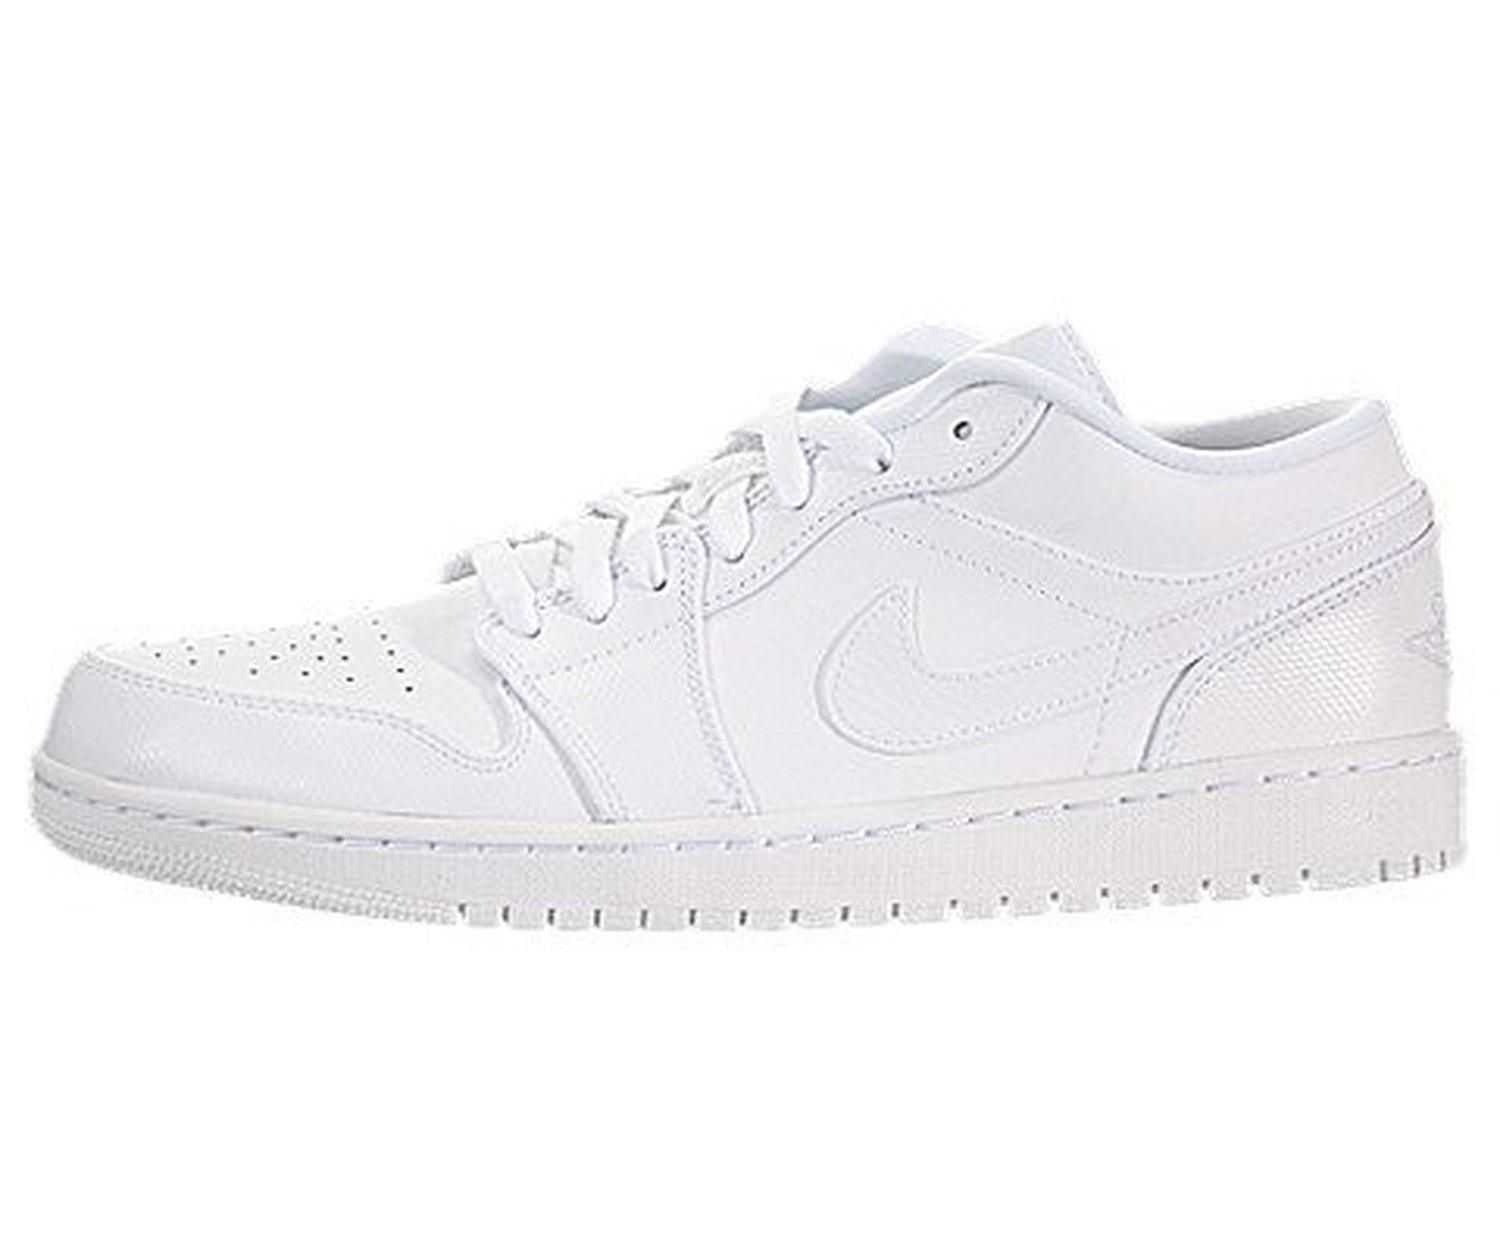 the latest 1a347 86fd2 Nike Jordan Men s Air Jordan 1 Low White White White Basketball Shoe 12 Men  US - Brought to you by Avarsha.com